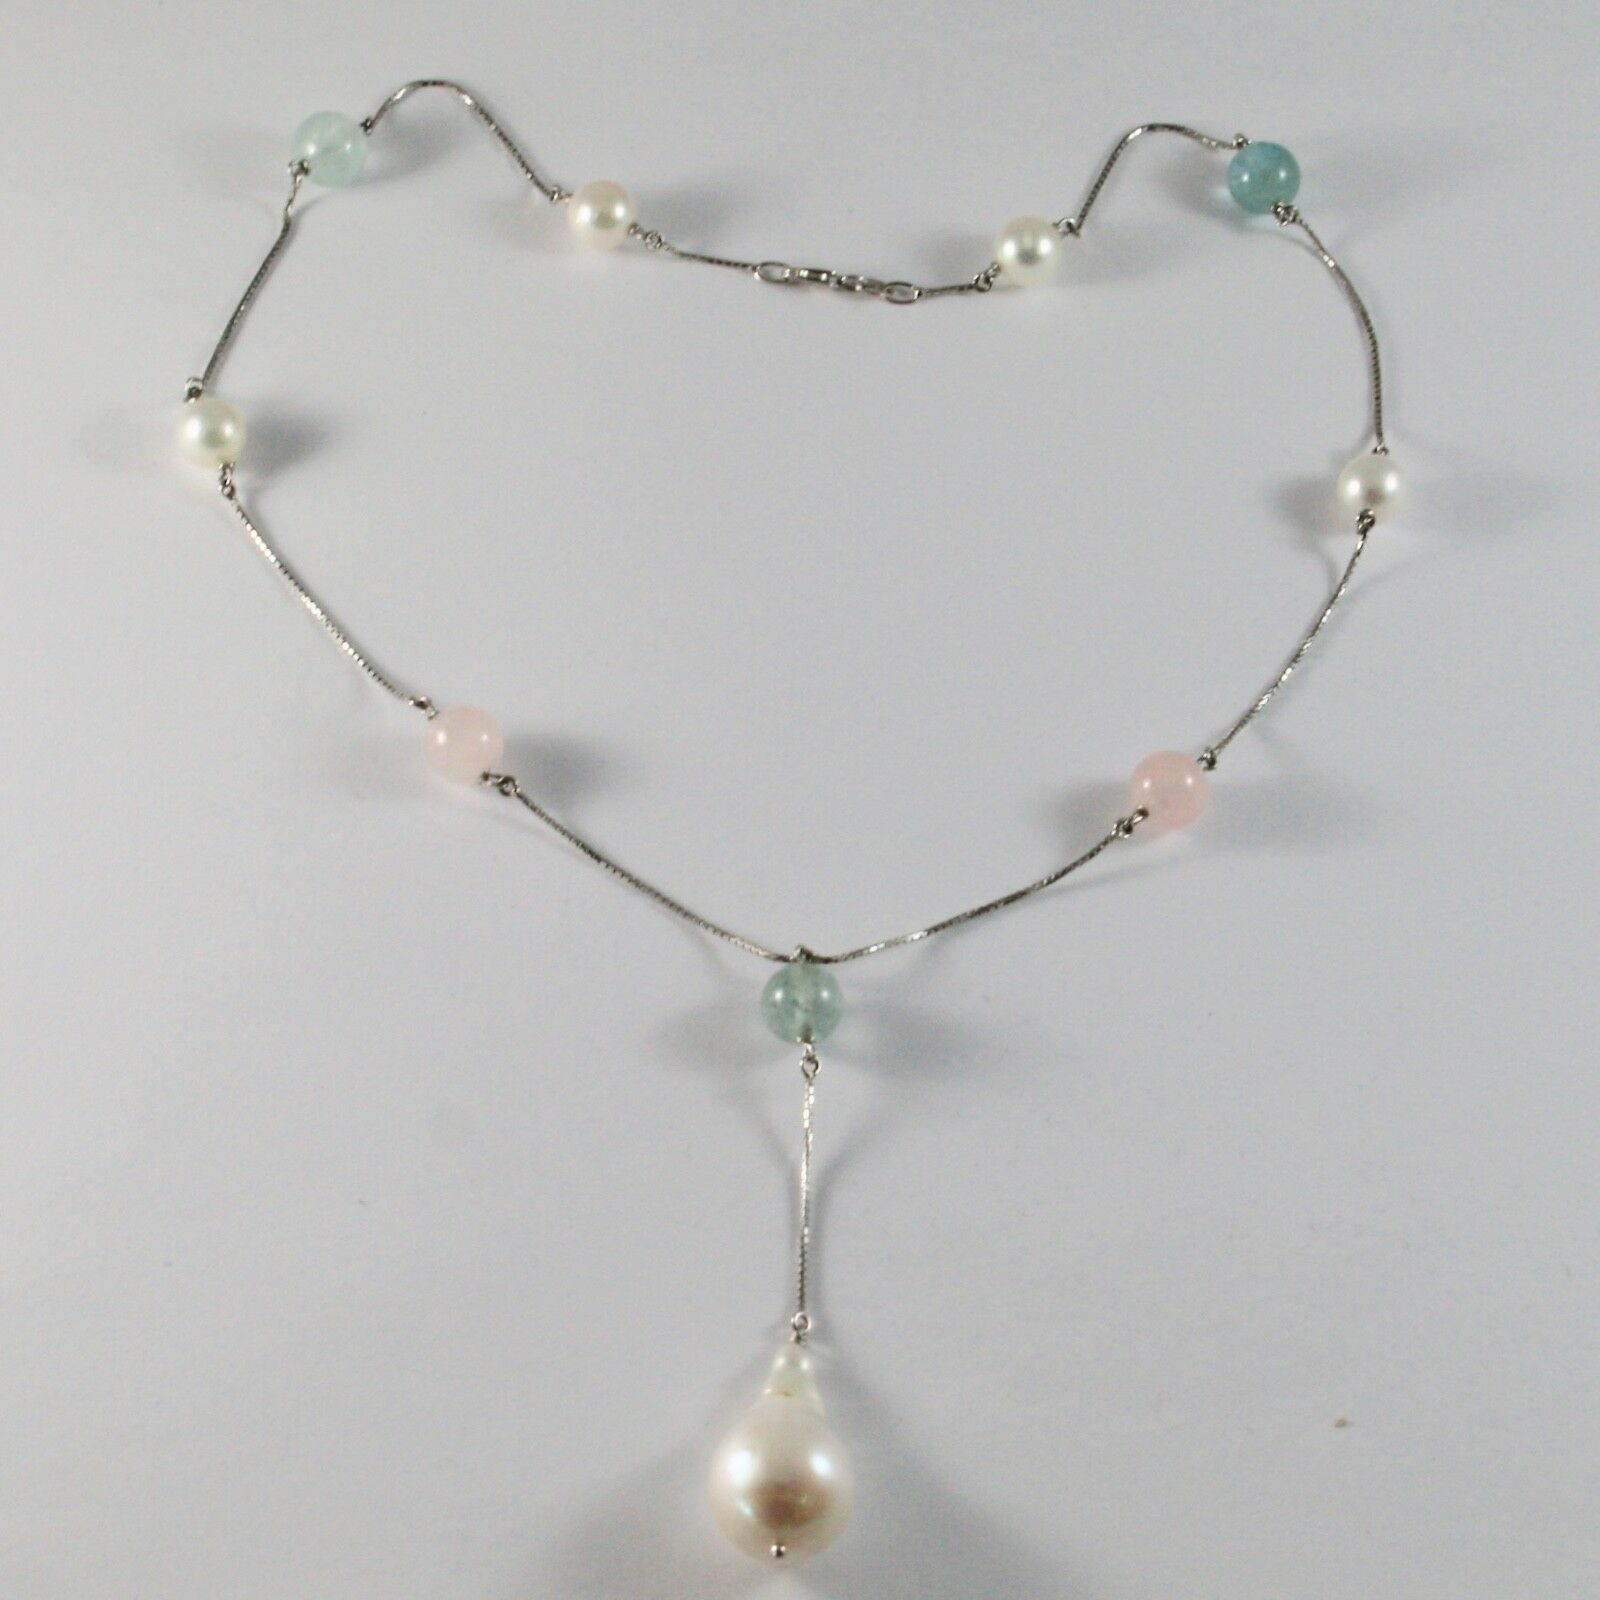 Necklace in 18kt White Gold with Aquamarine Pearls Akoya Pearl Baroque Drop